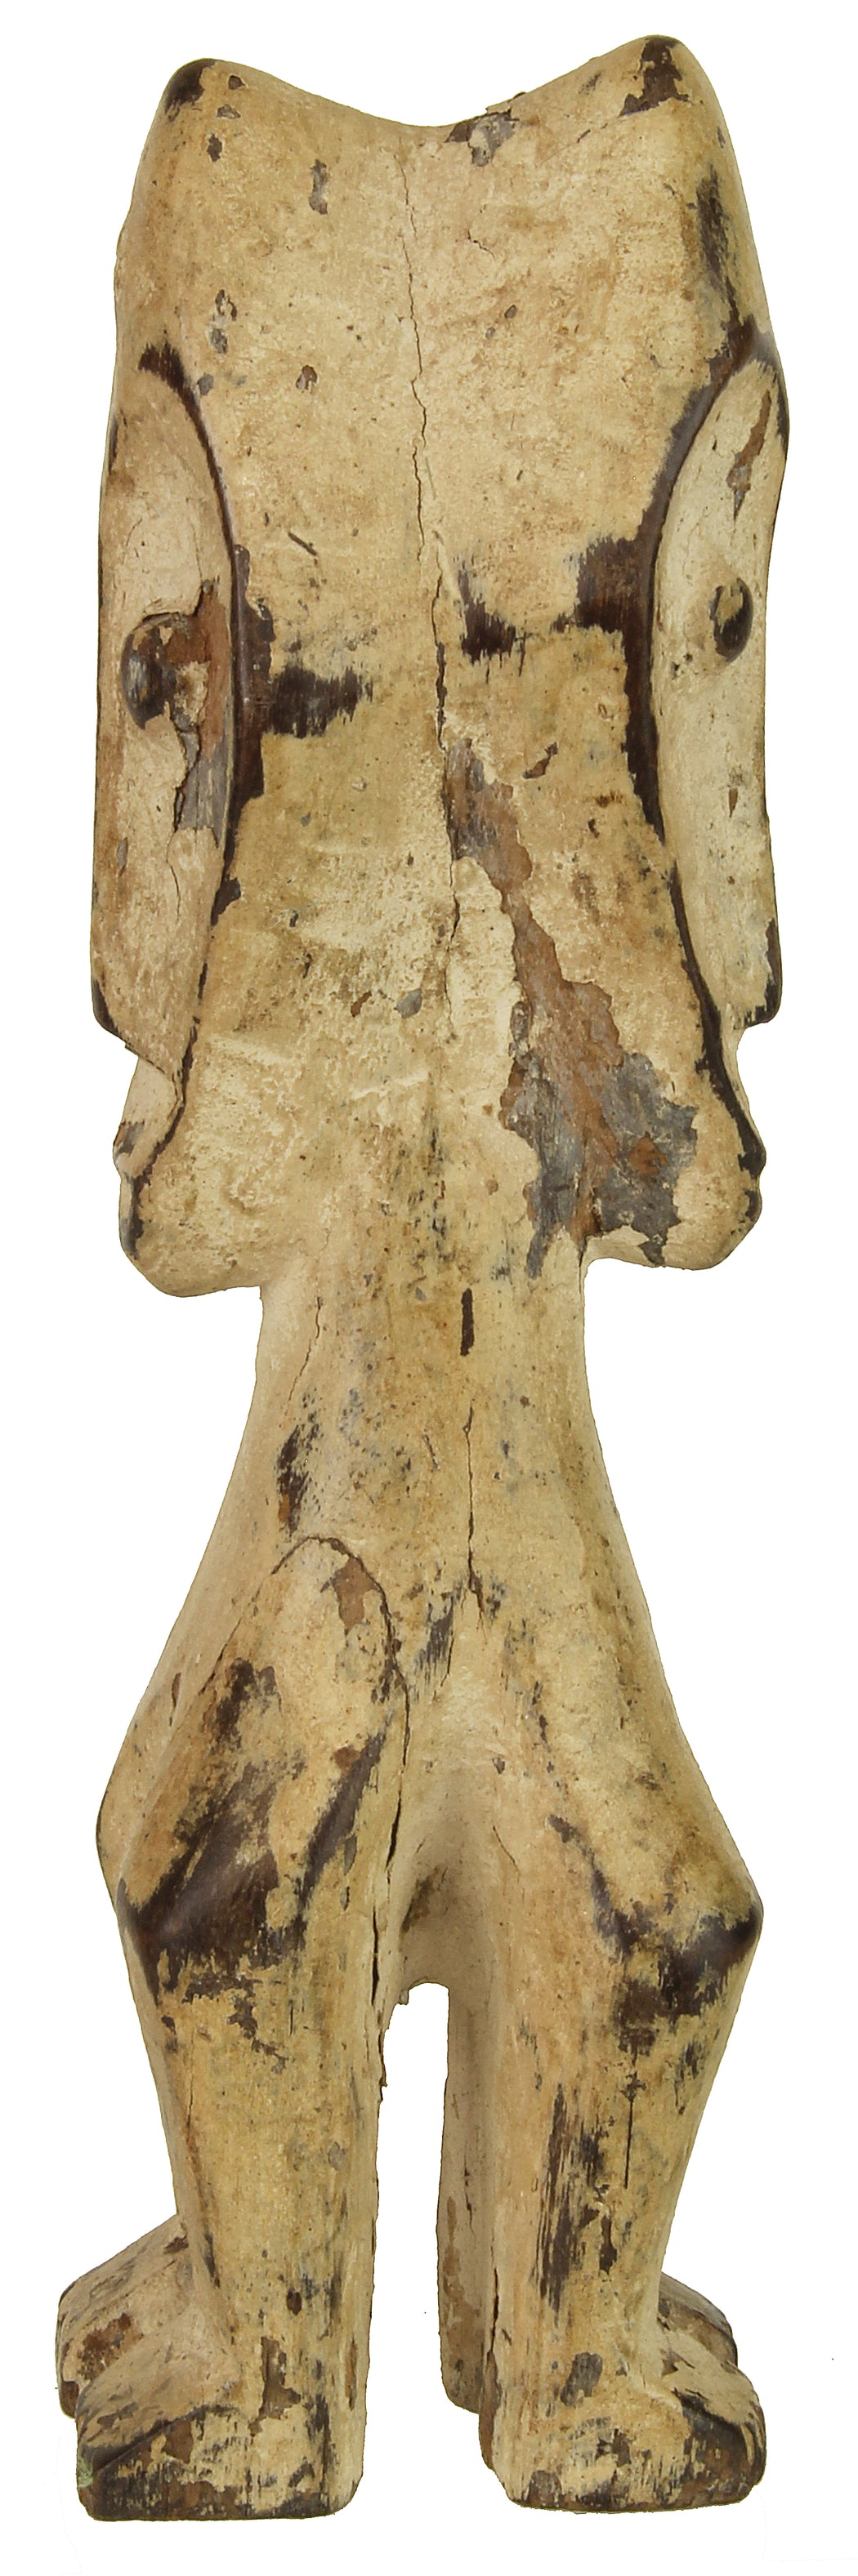 "Lega Tribal Figure Statue of Congo | 8"" - Niger Bend"